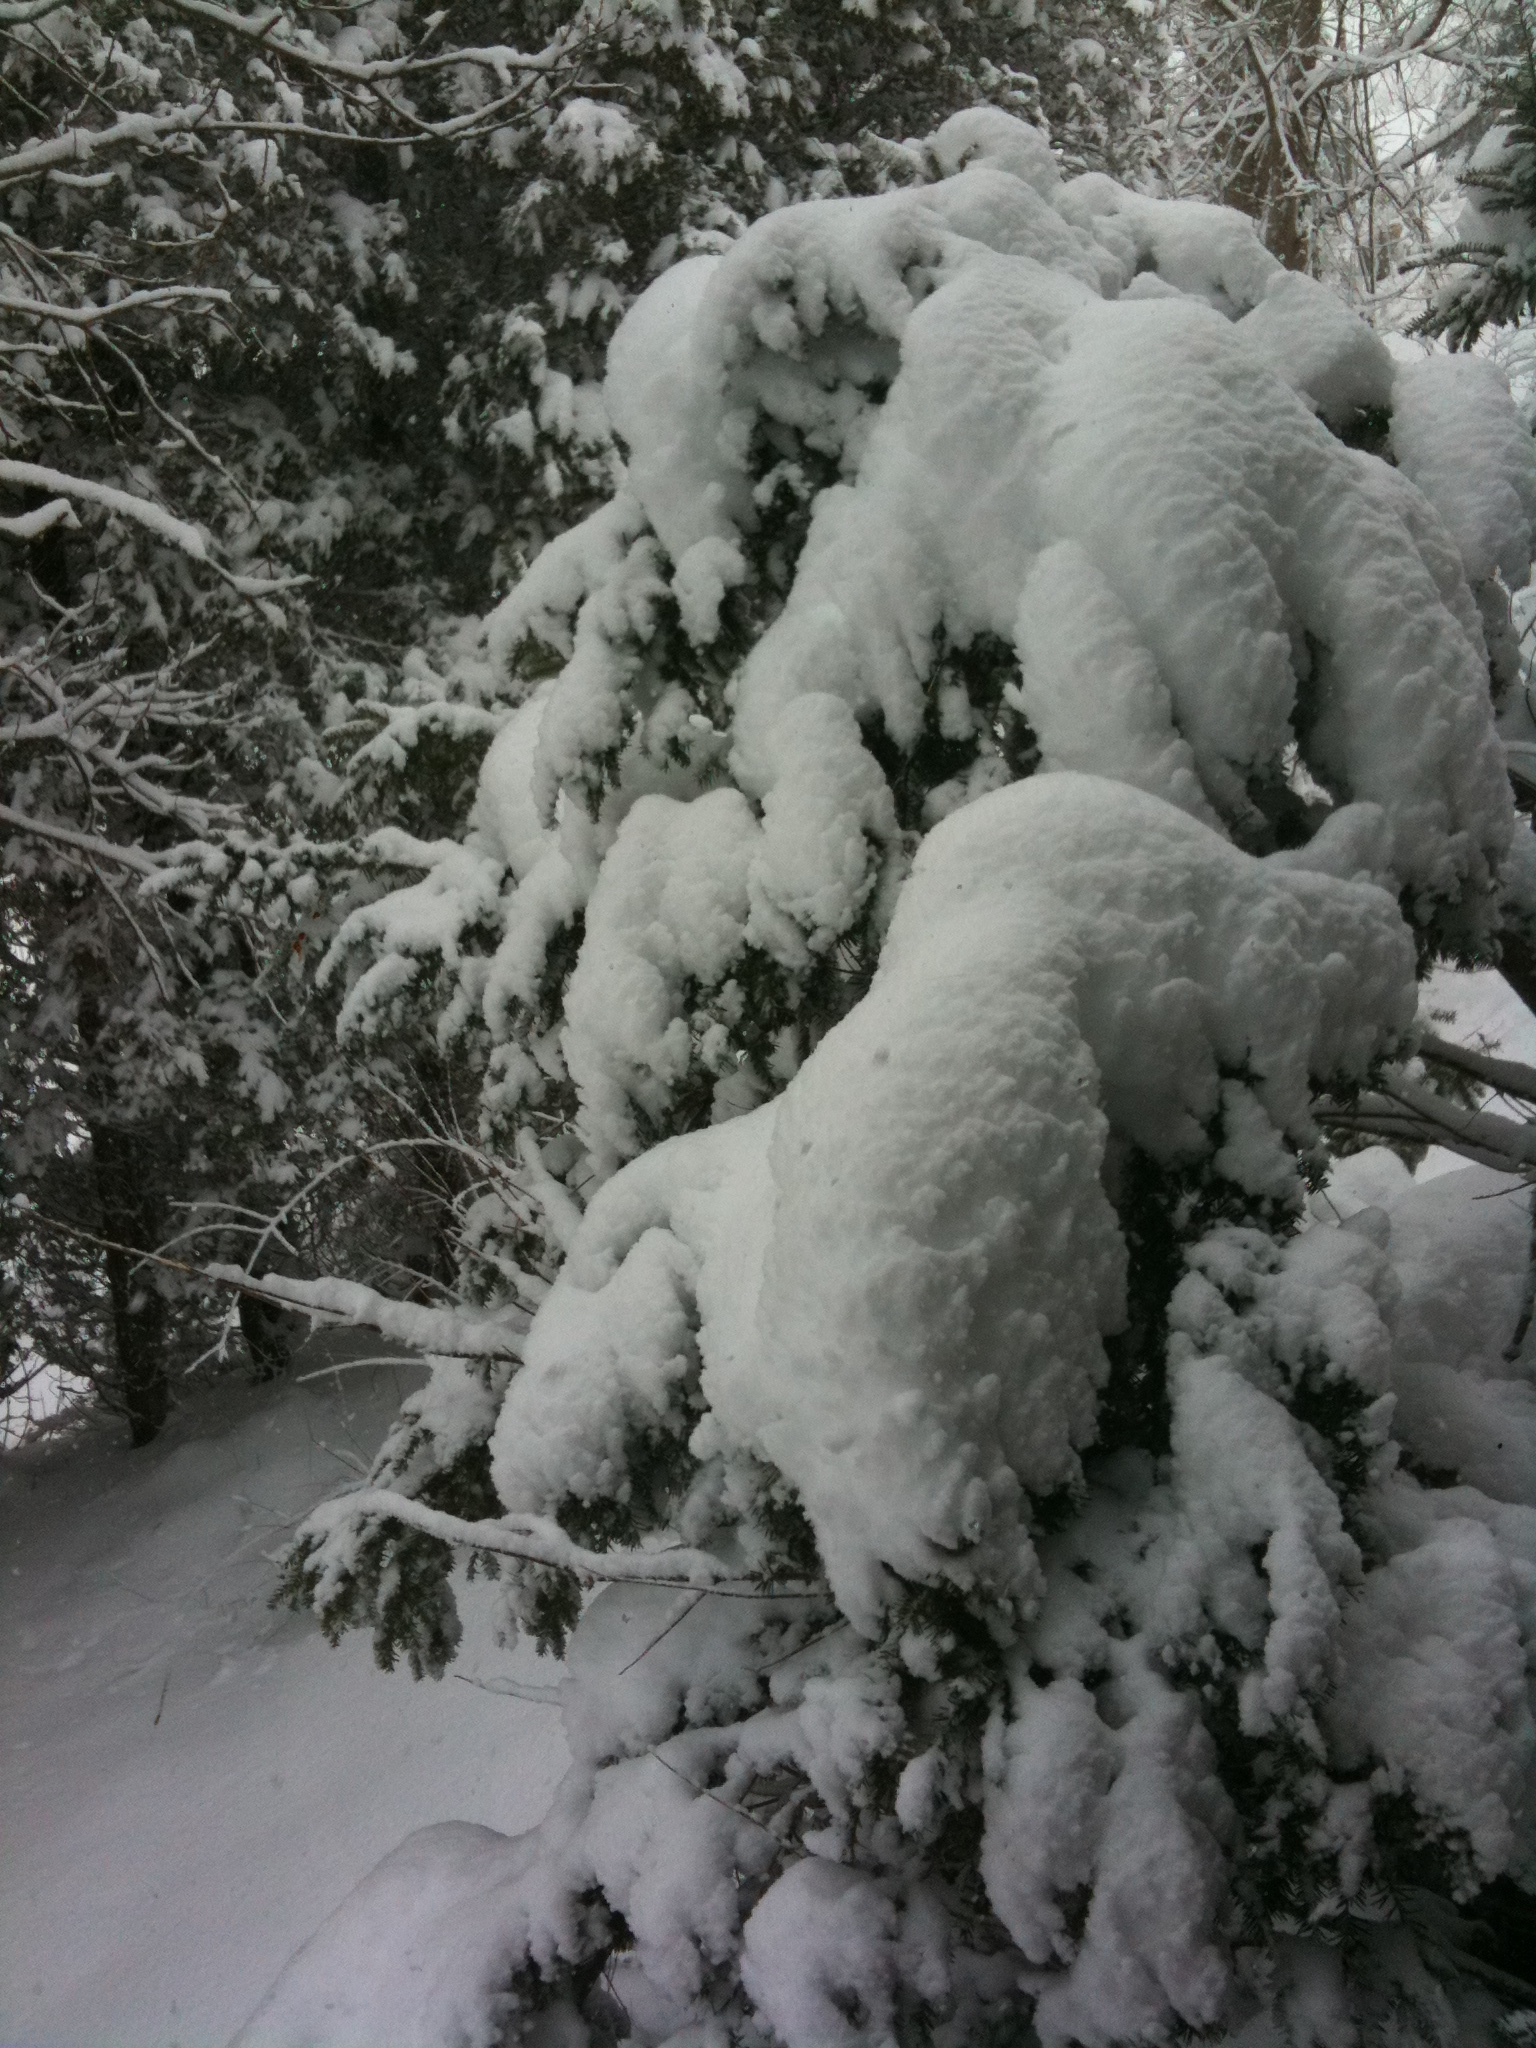 EPIC SNOW - Pictures from our home and snowy yard!! #ROC #Snowmaggedon